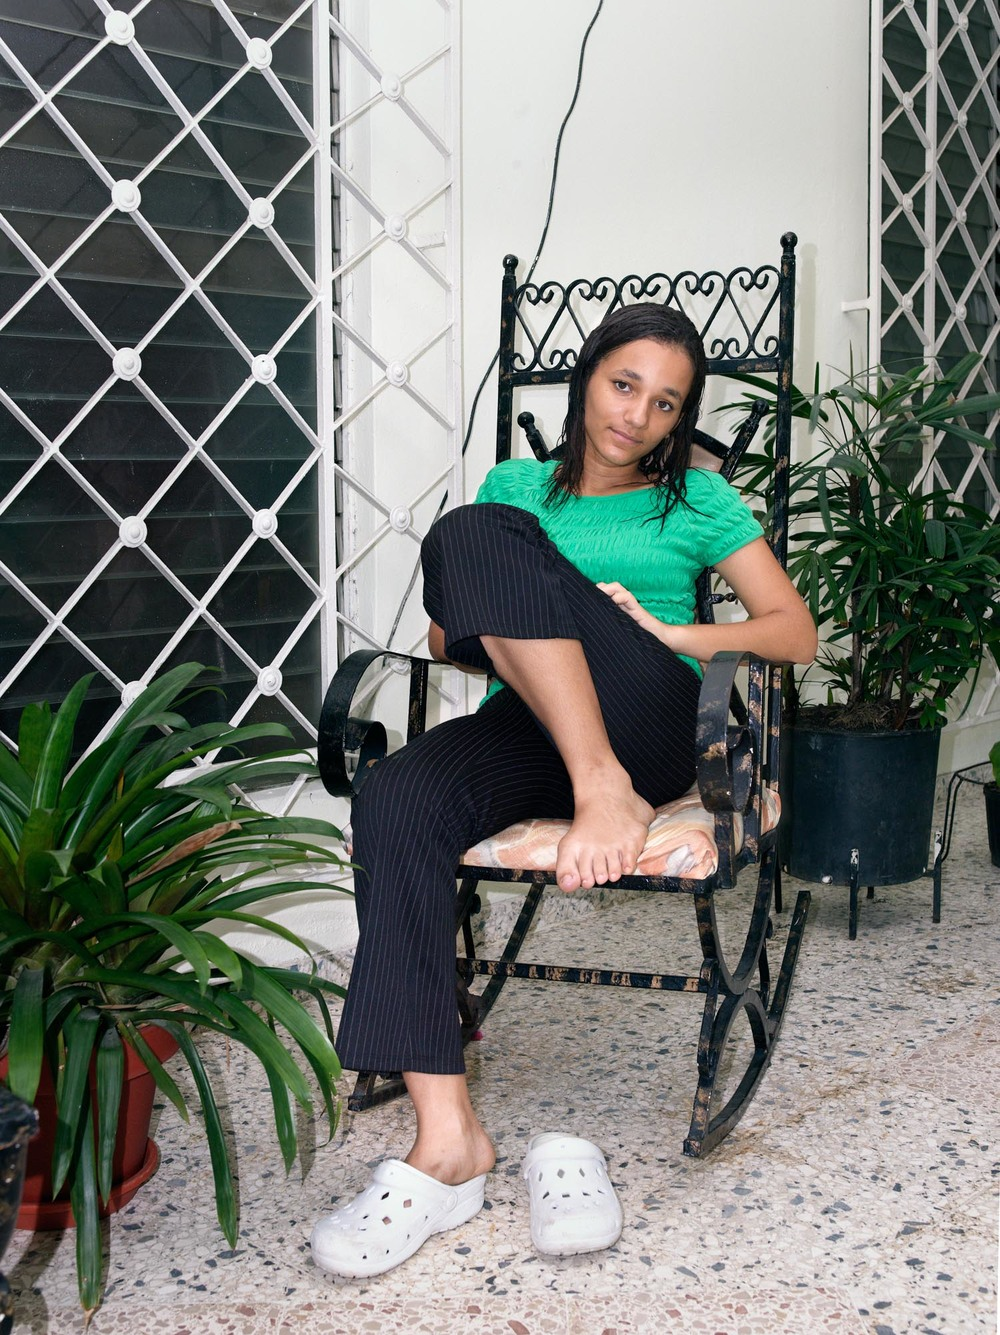 Laura on the Porch, 2008. Gazcue, Santo Domingo, R.D.